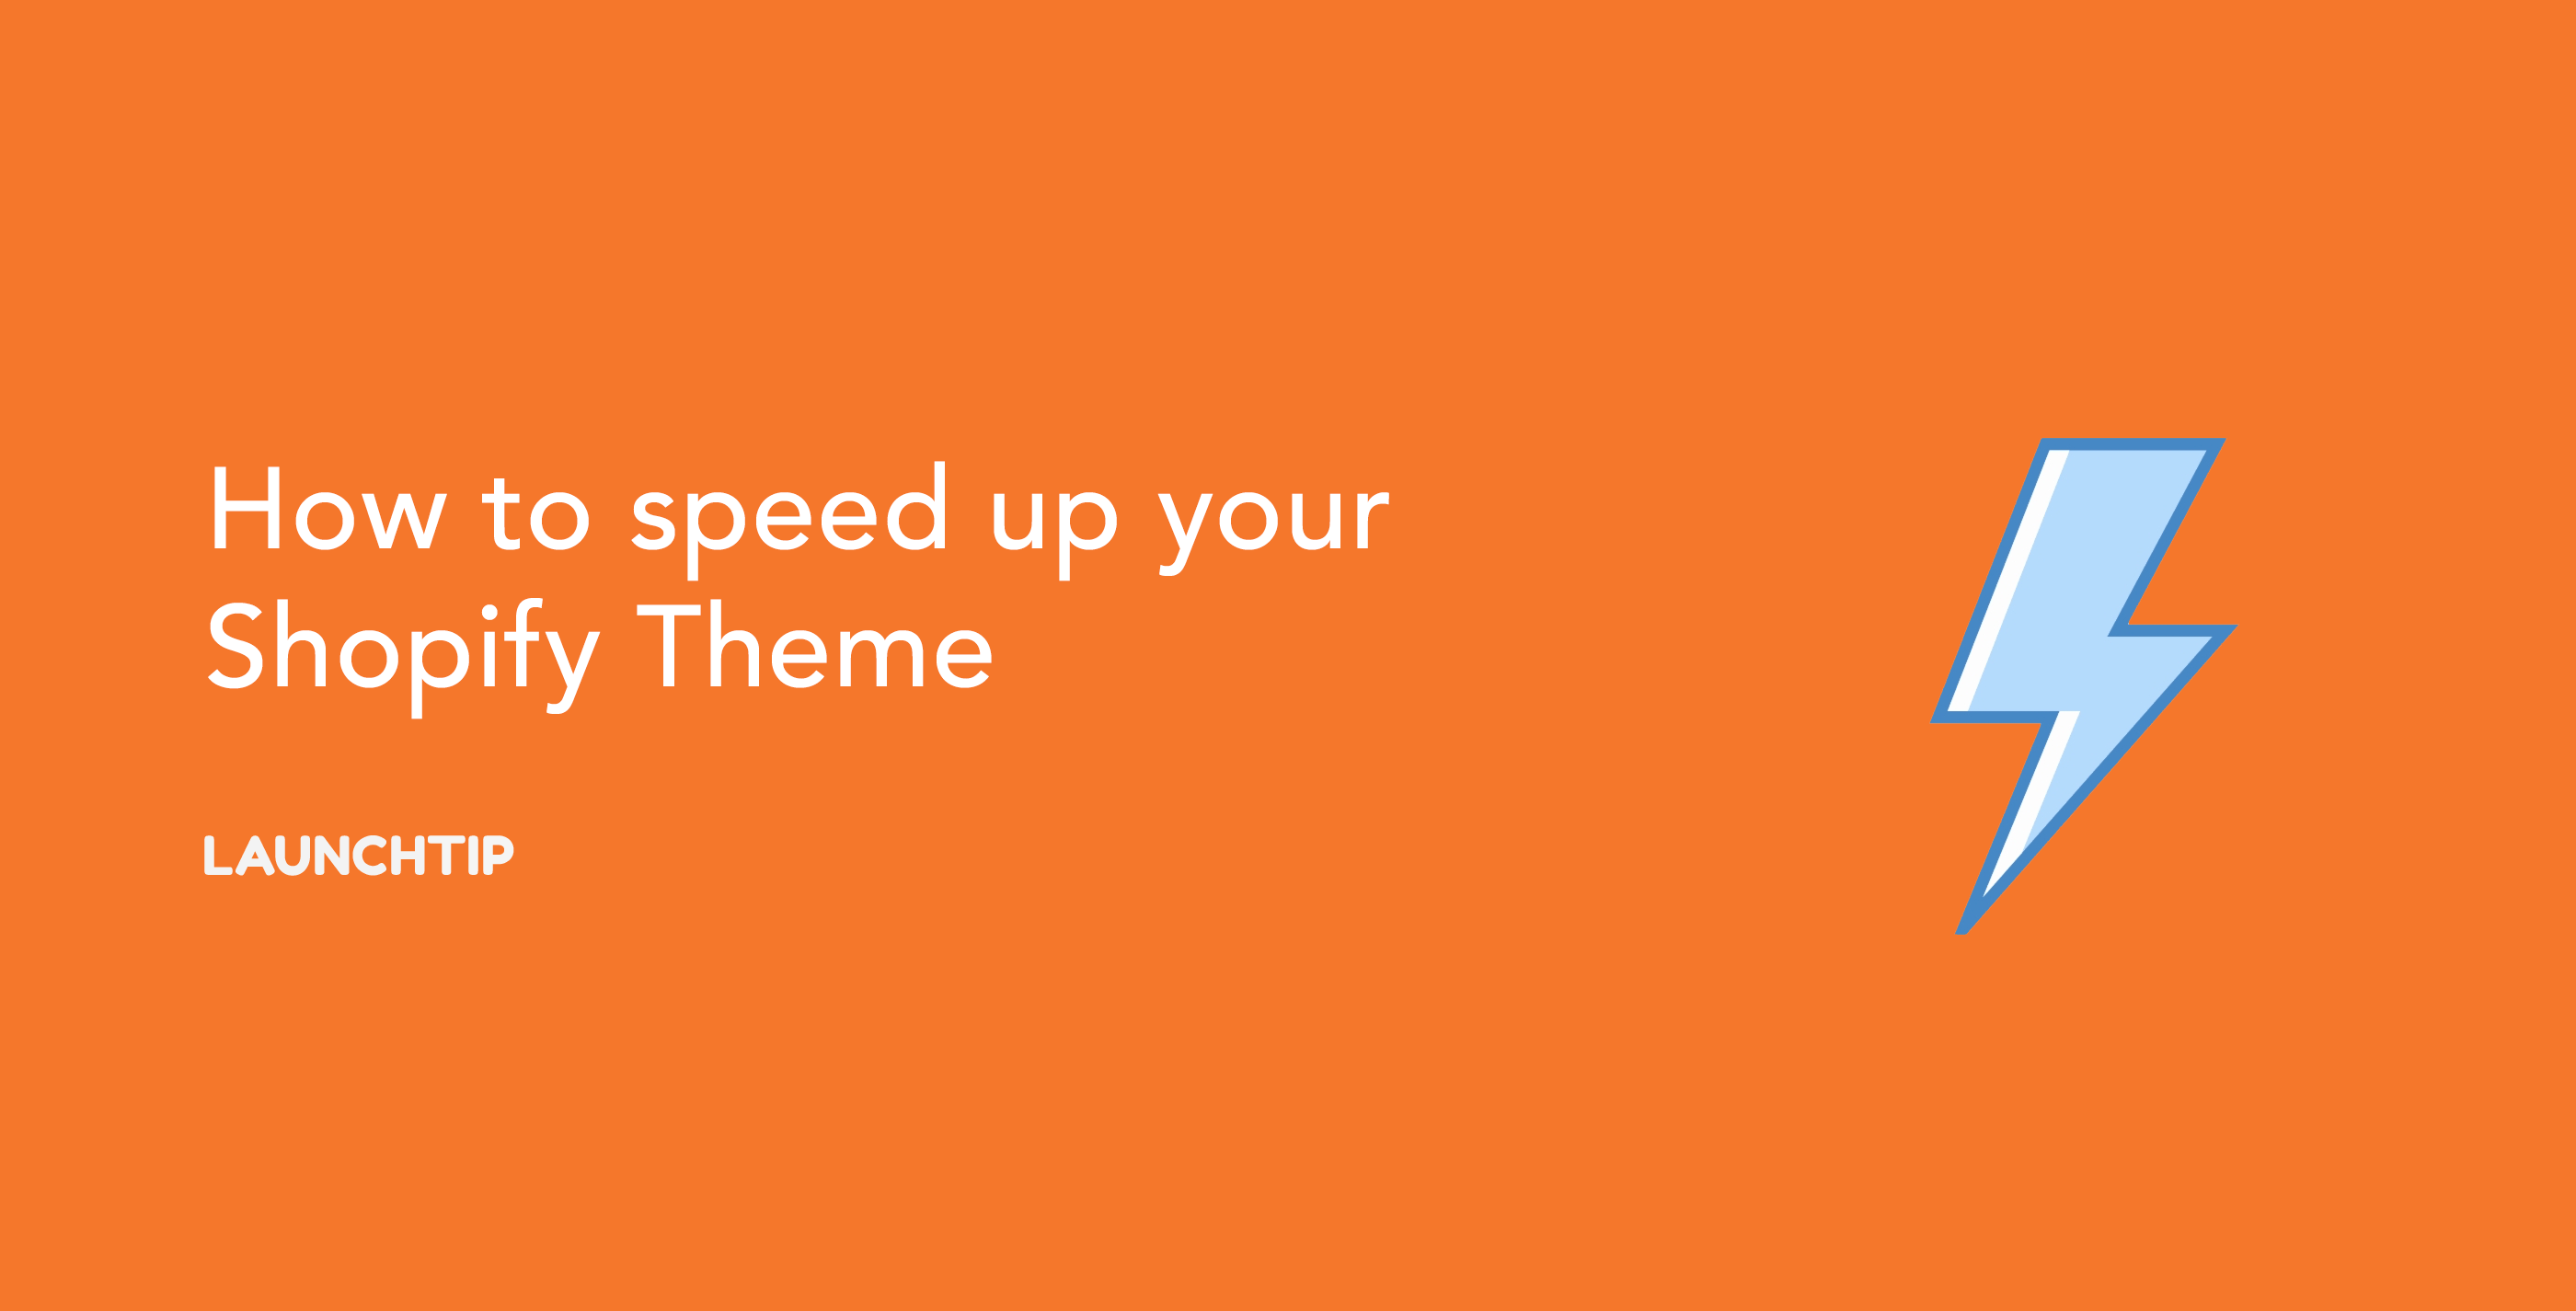 How to speed up your Shopify Theme